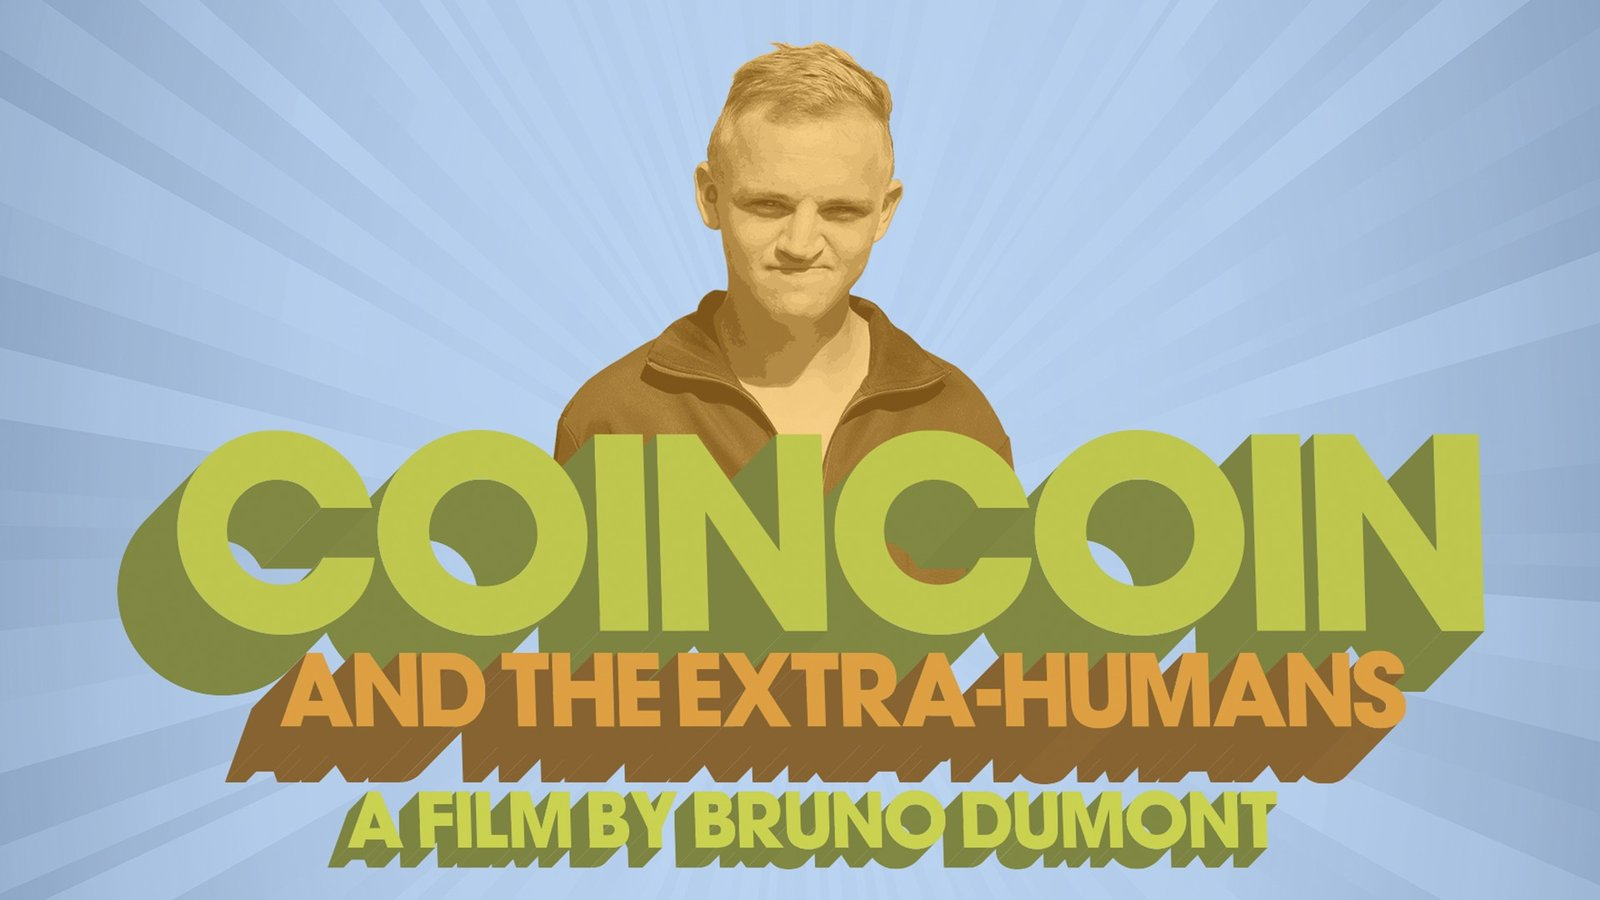 Coincoin and the Extra Humans - Coincoin et les z'inhumains